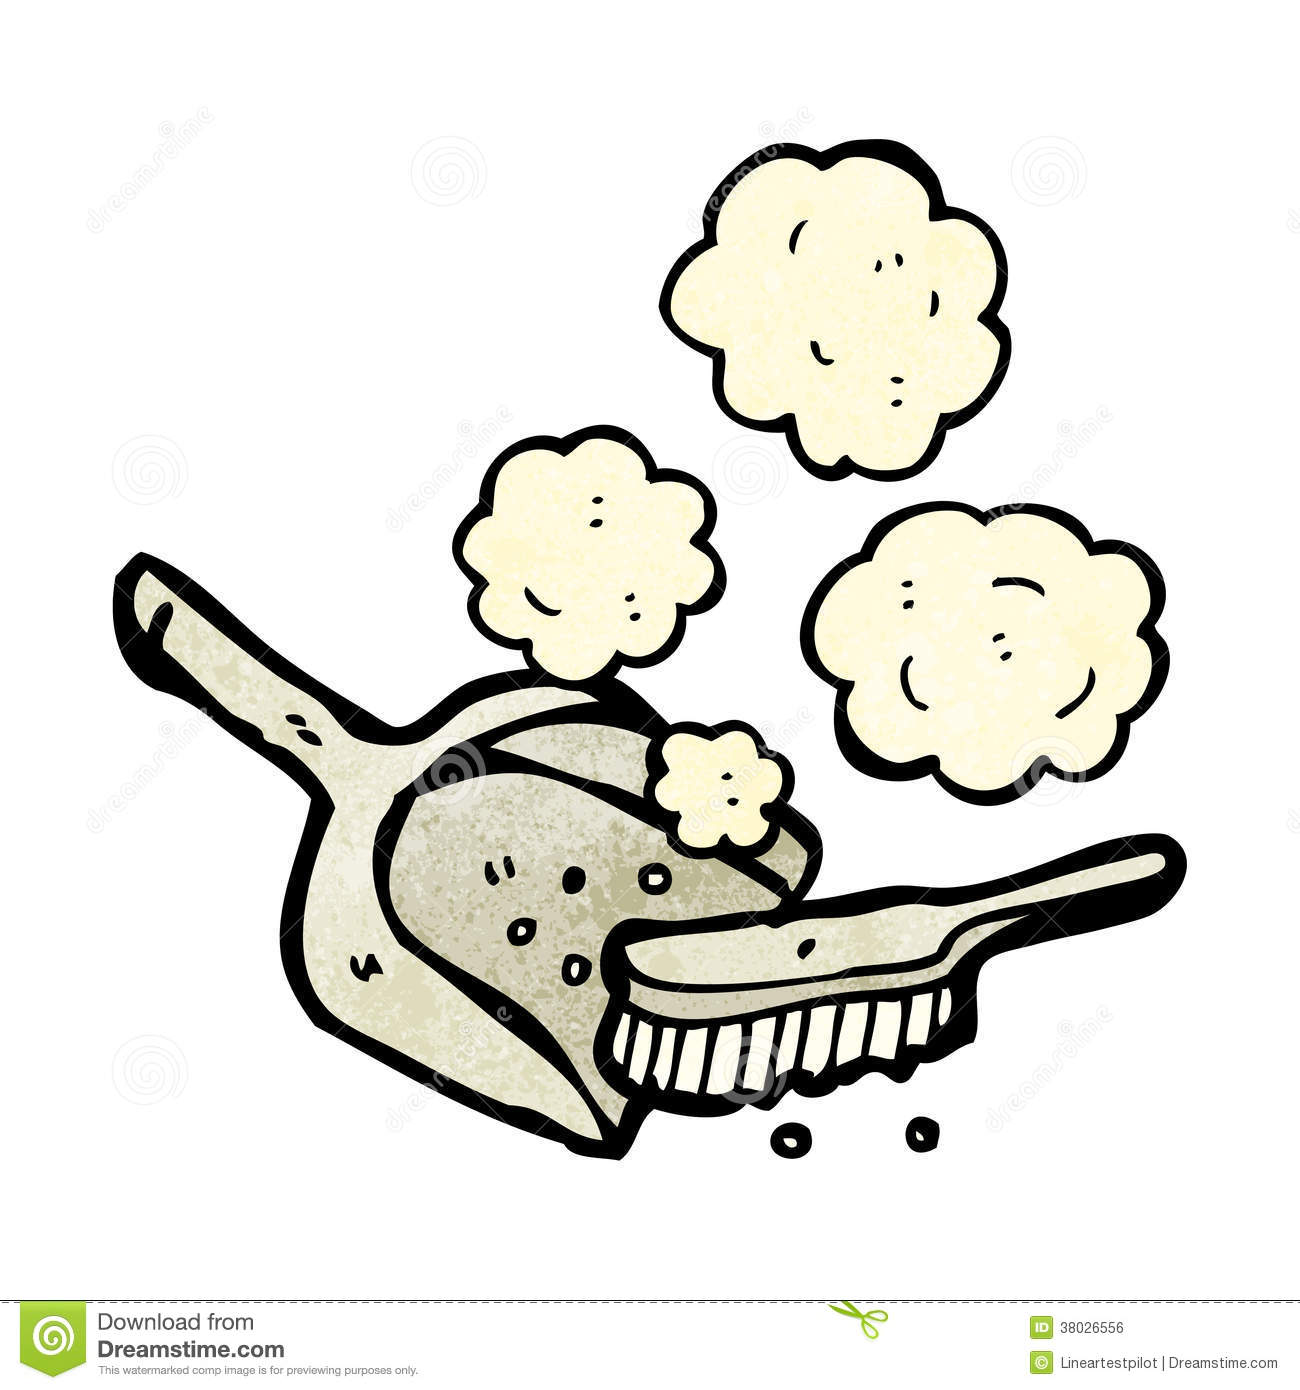 Cartoon Dust Pan And Brush Royalty Free Stock Image - Image: 38026556